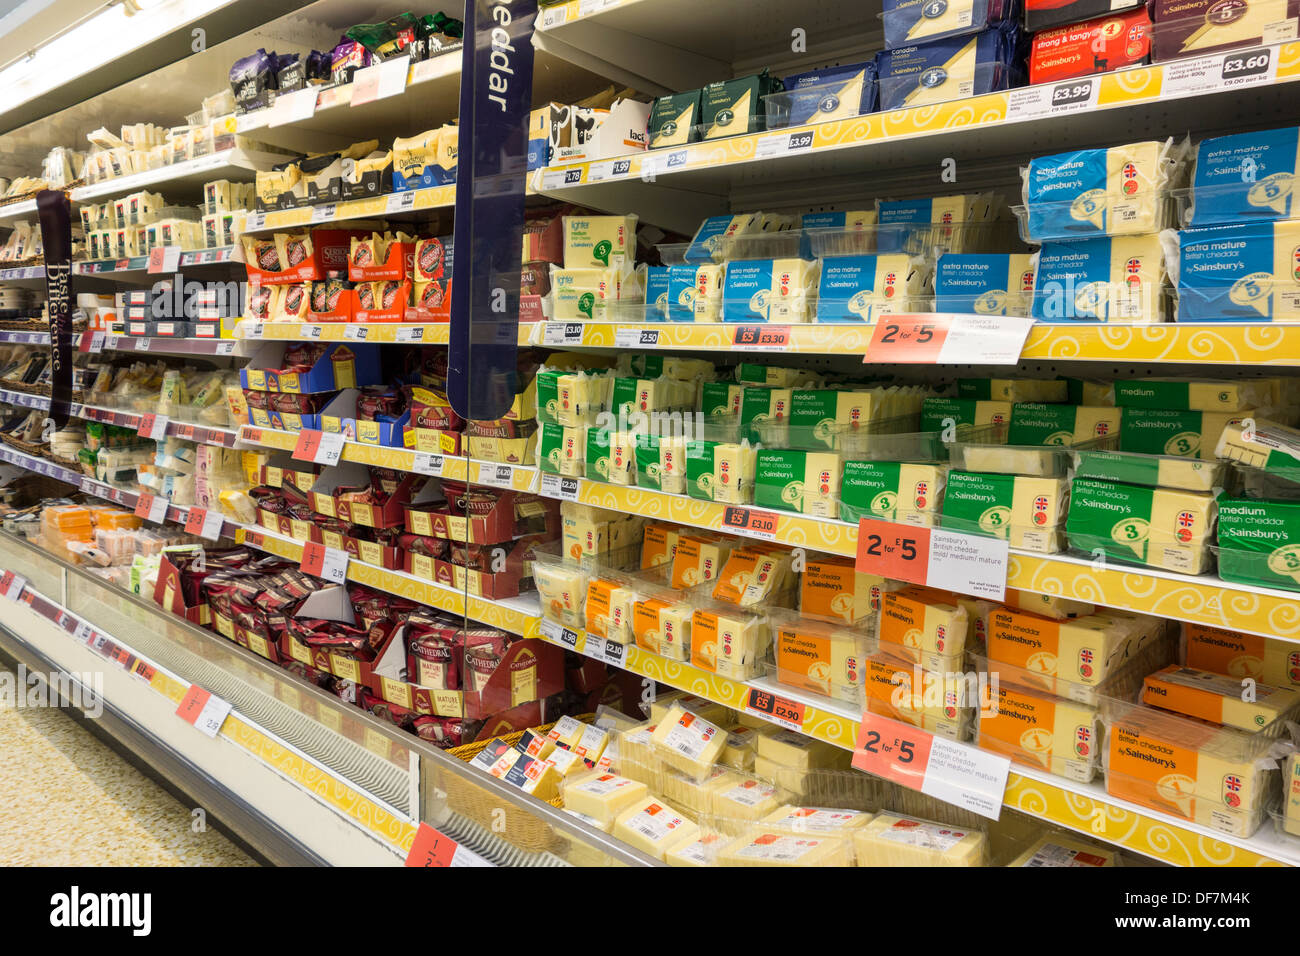 sainsburys supermarket essay The mission of sainsbury's supermarkets is to be the consumer's first choice for food, delivering products of outstanding quality and great service at a competitive cost through working faster, simpler and together.